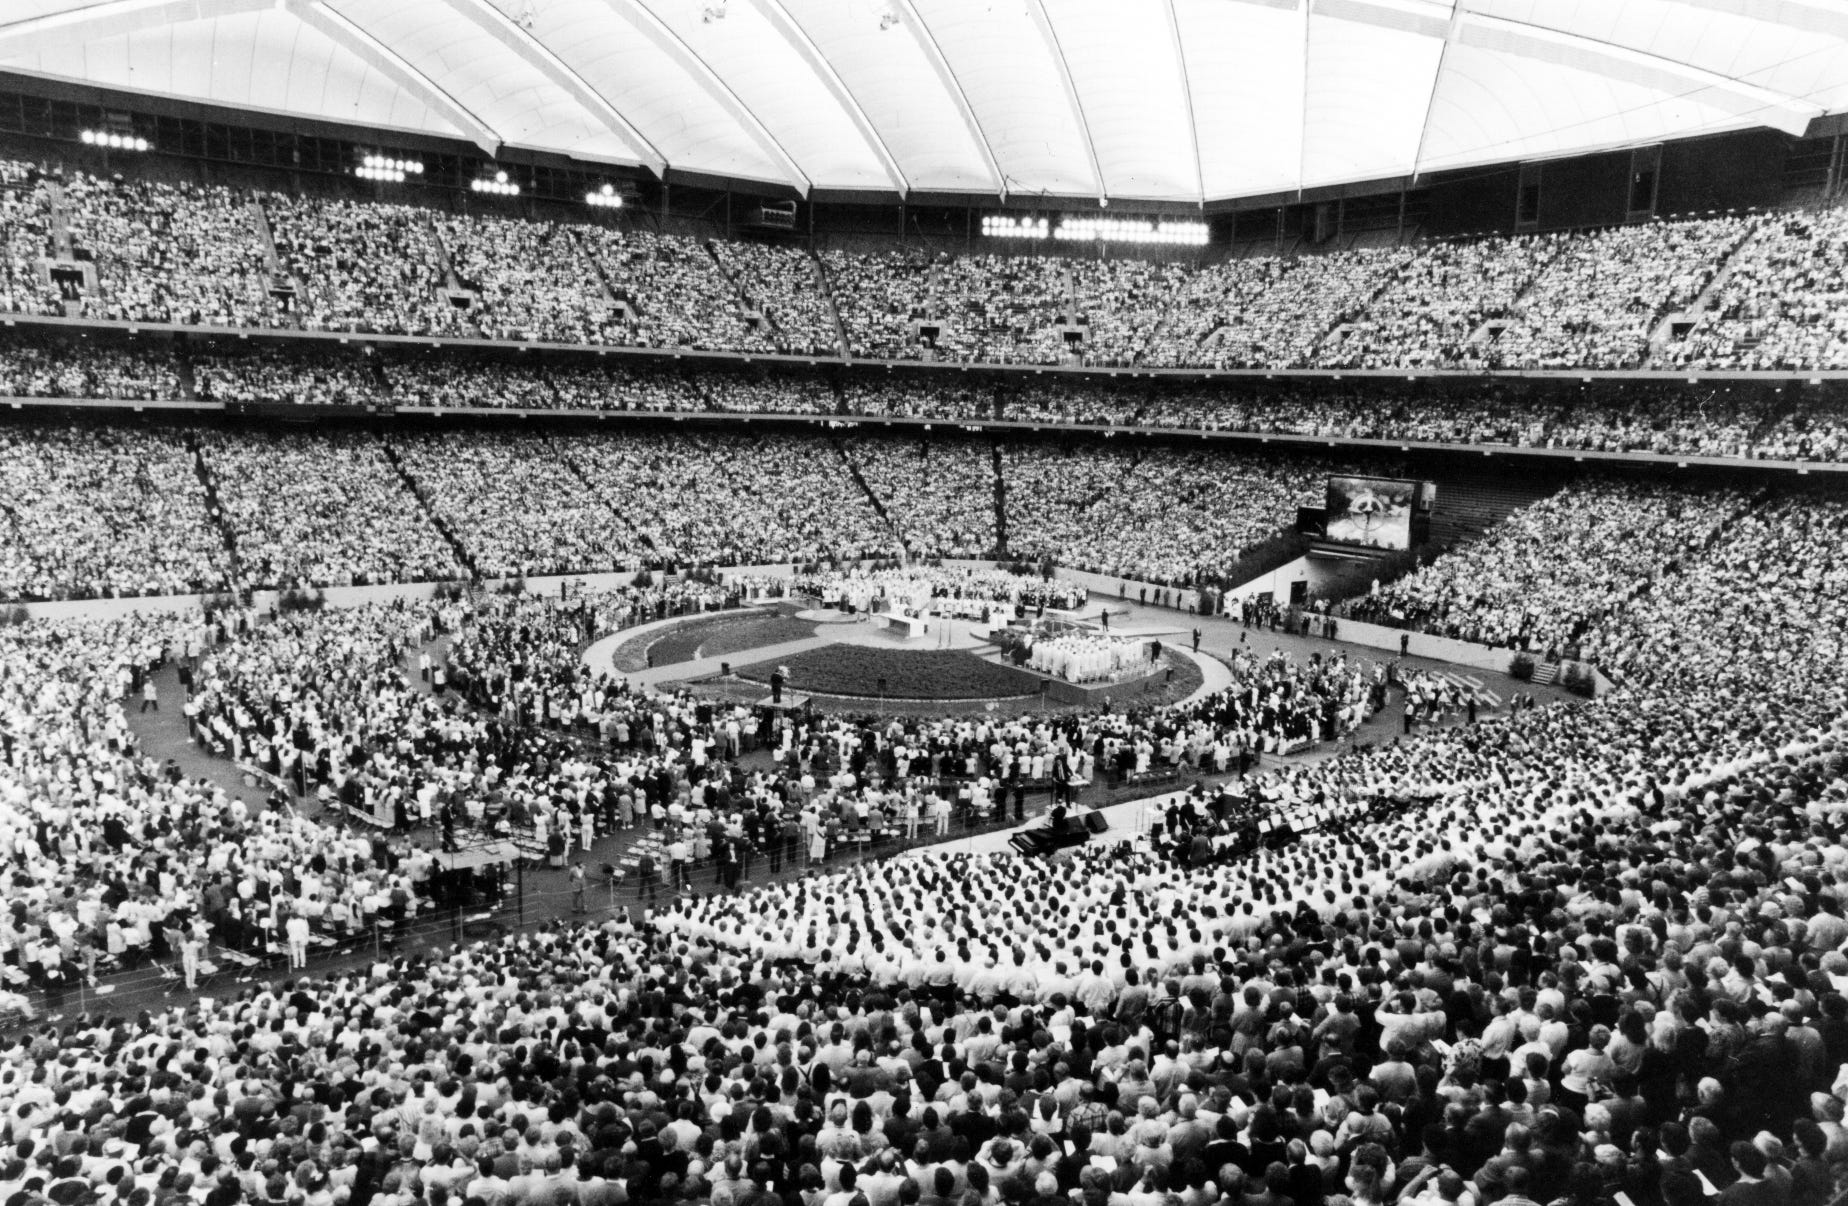 The faithful fill the Silverdome on September 19, 1987,